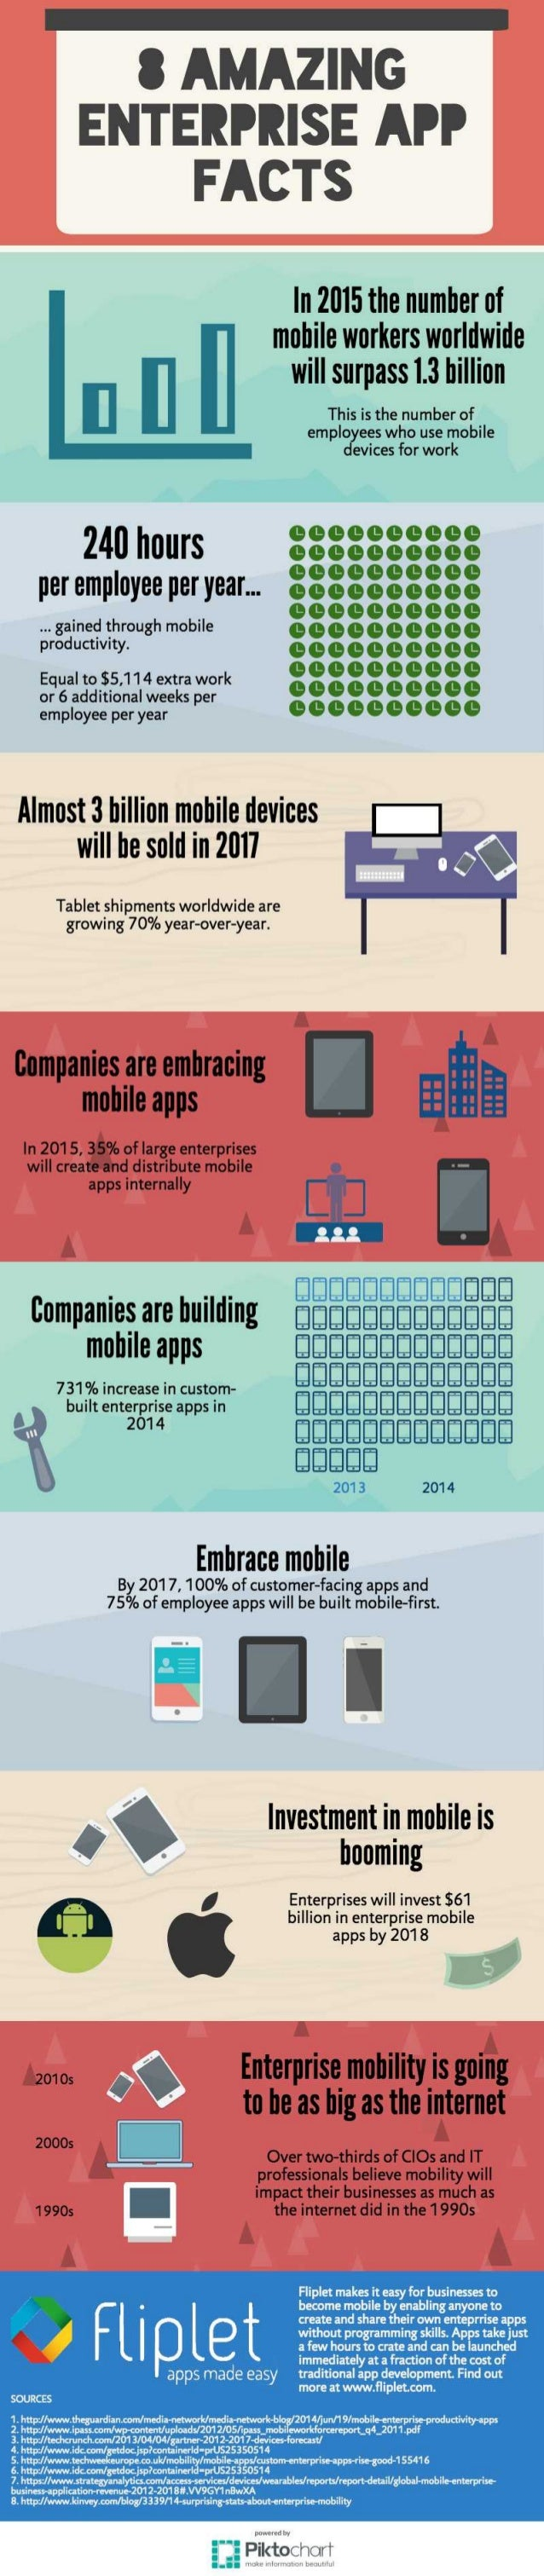 8 amazing enterprise mobility trends and facts 2016-2017 MOBIQUANT Slideshare Linkedin